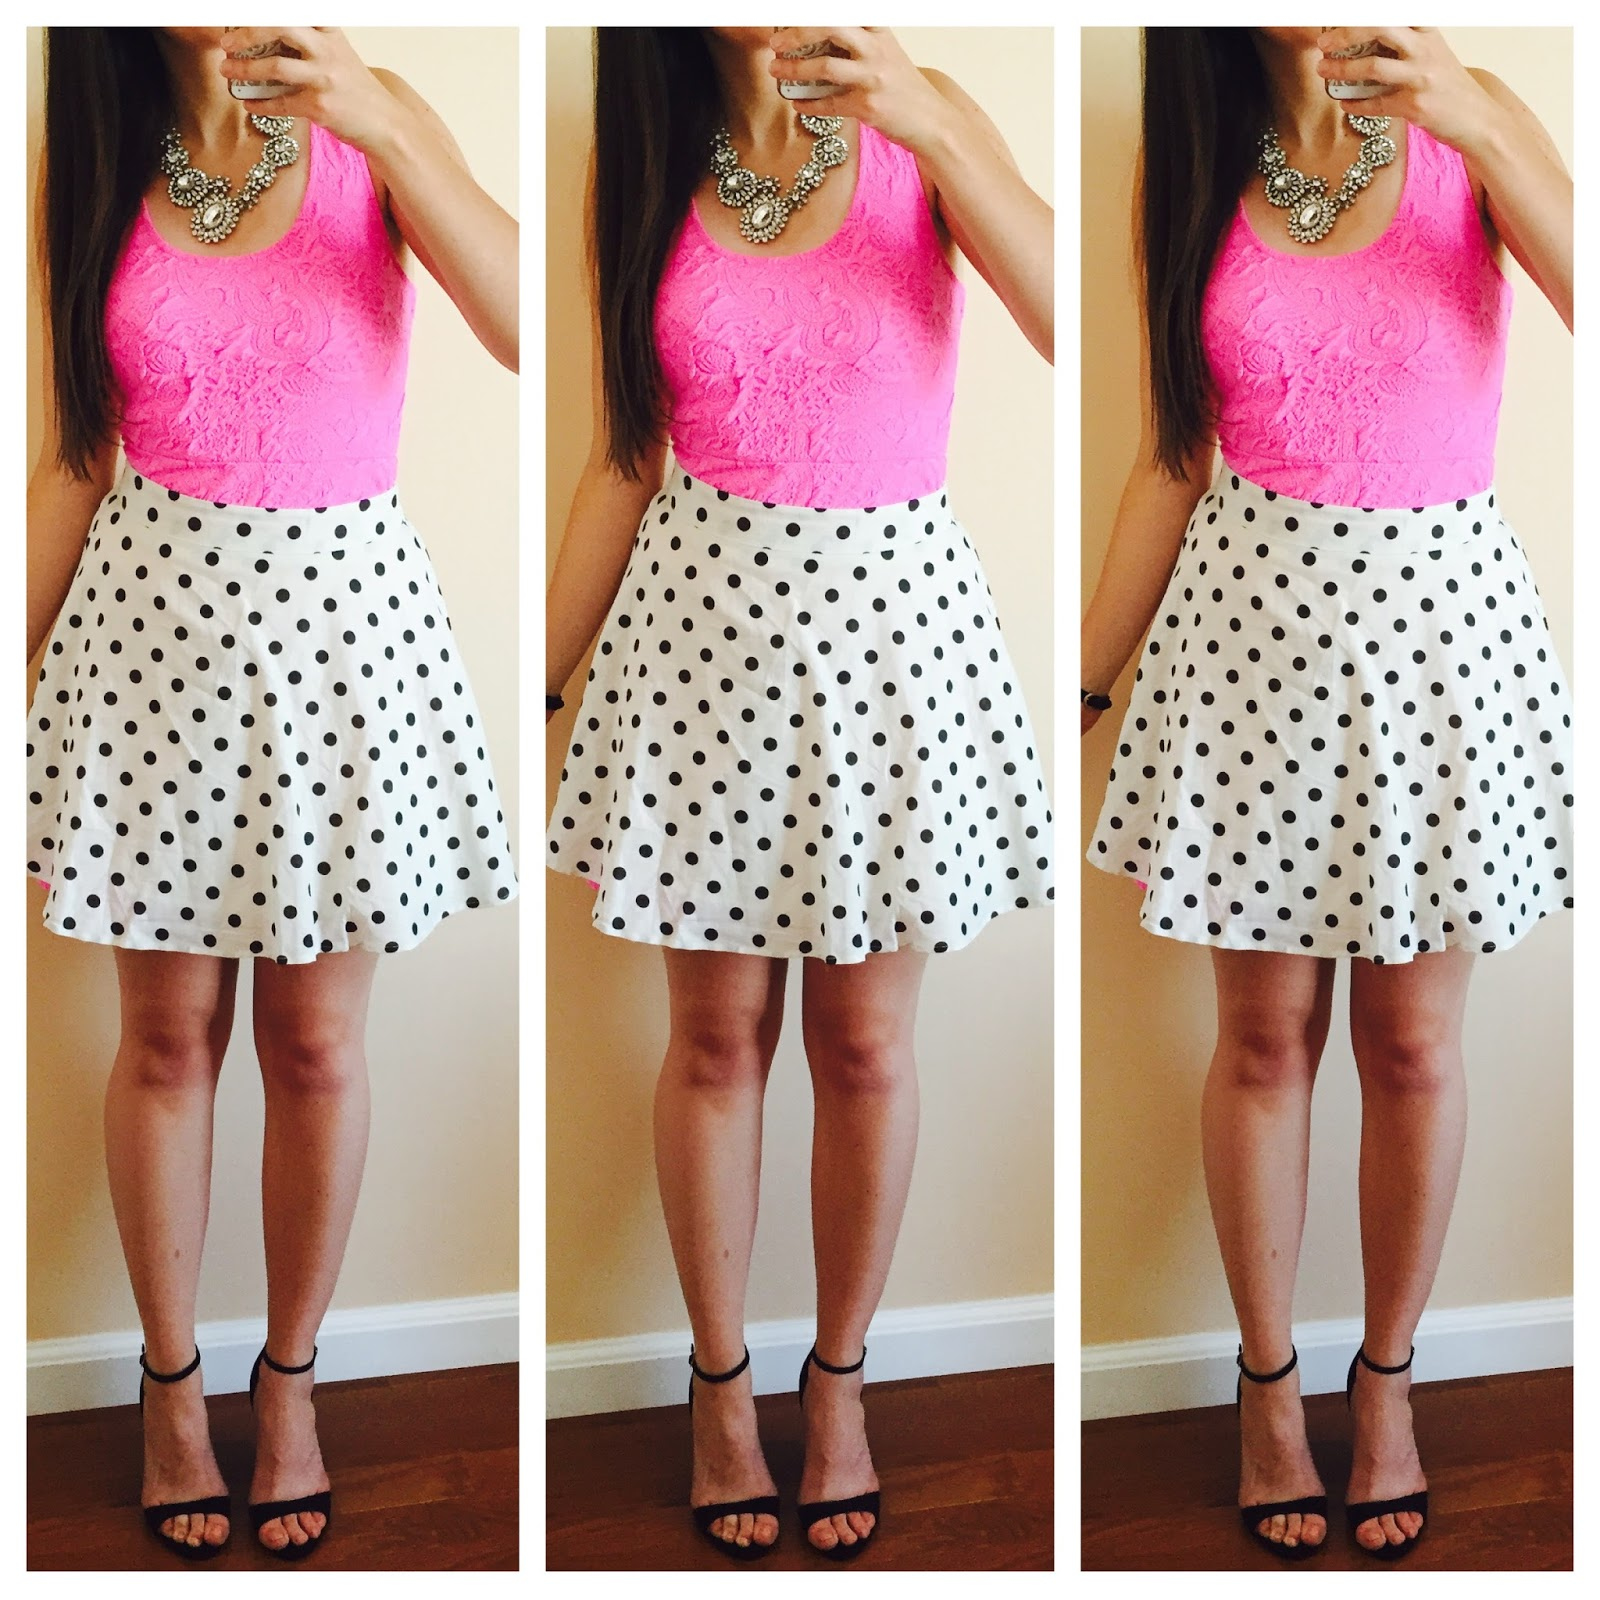 polka dot skirt over a pink dress, how to style a summer dress with a skirt over it, polka dot skirt, pink dress,